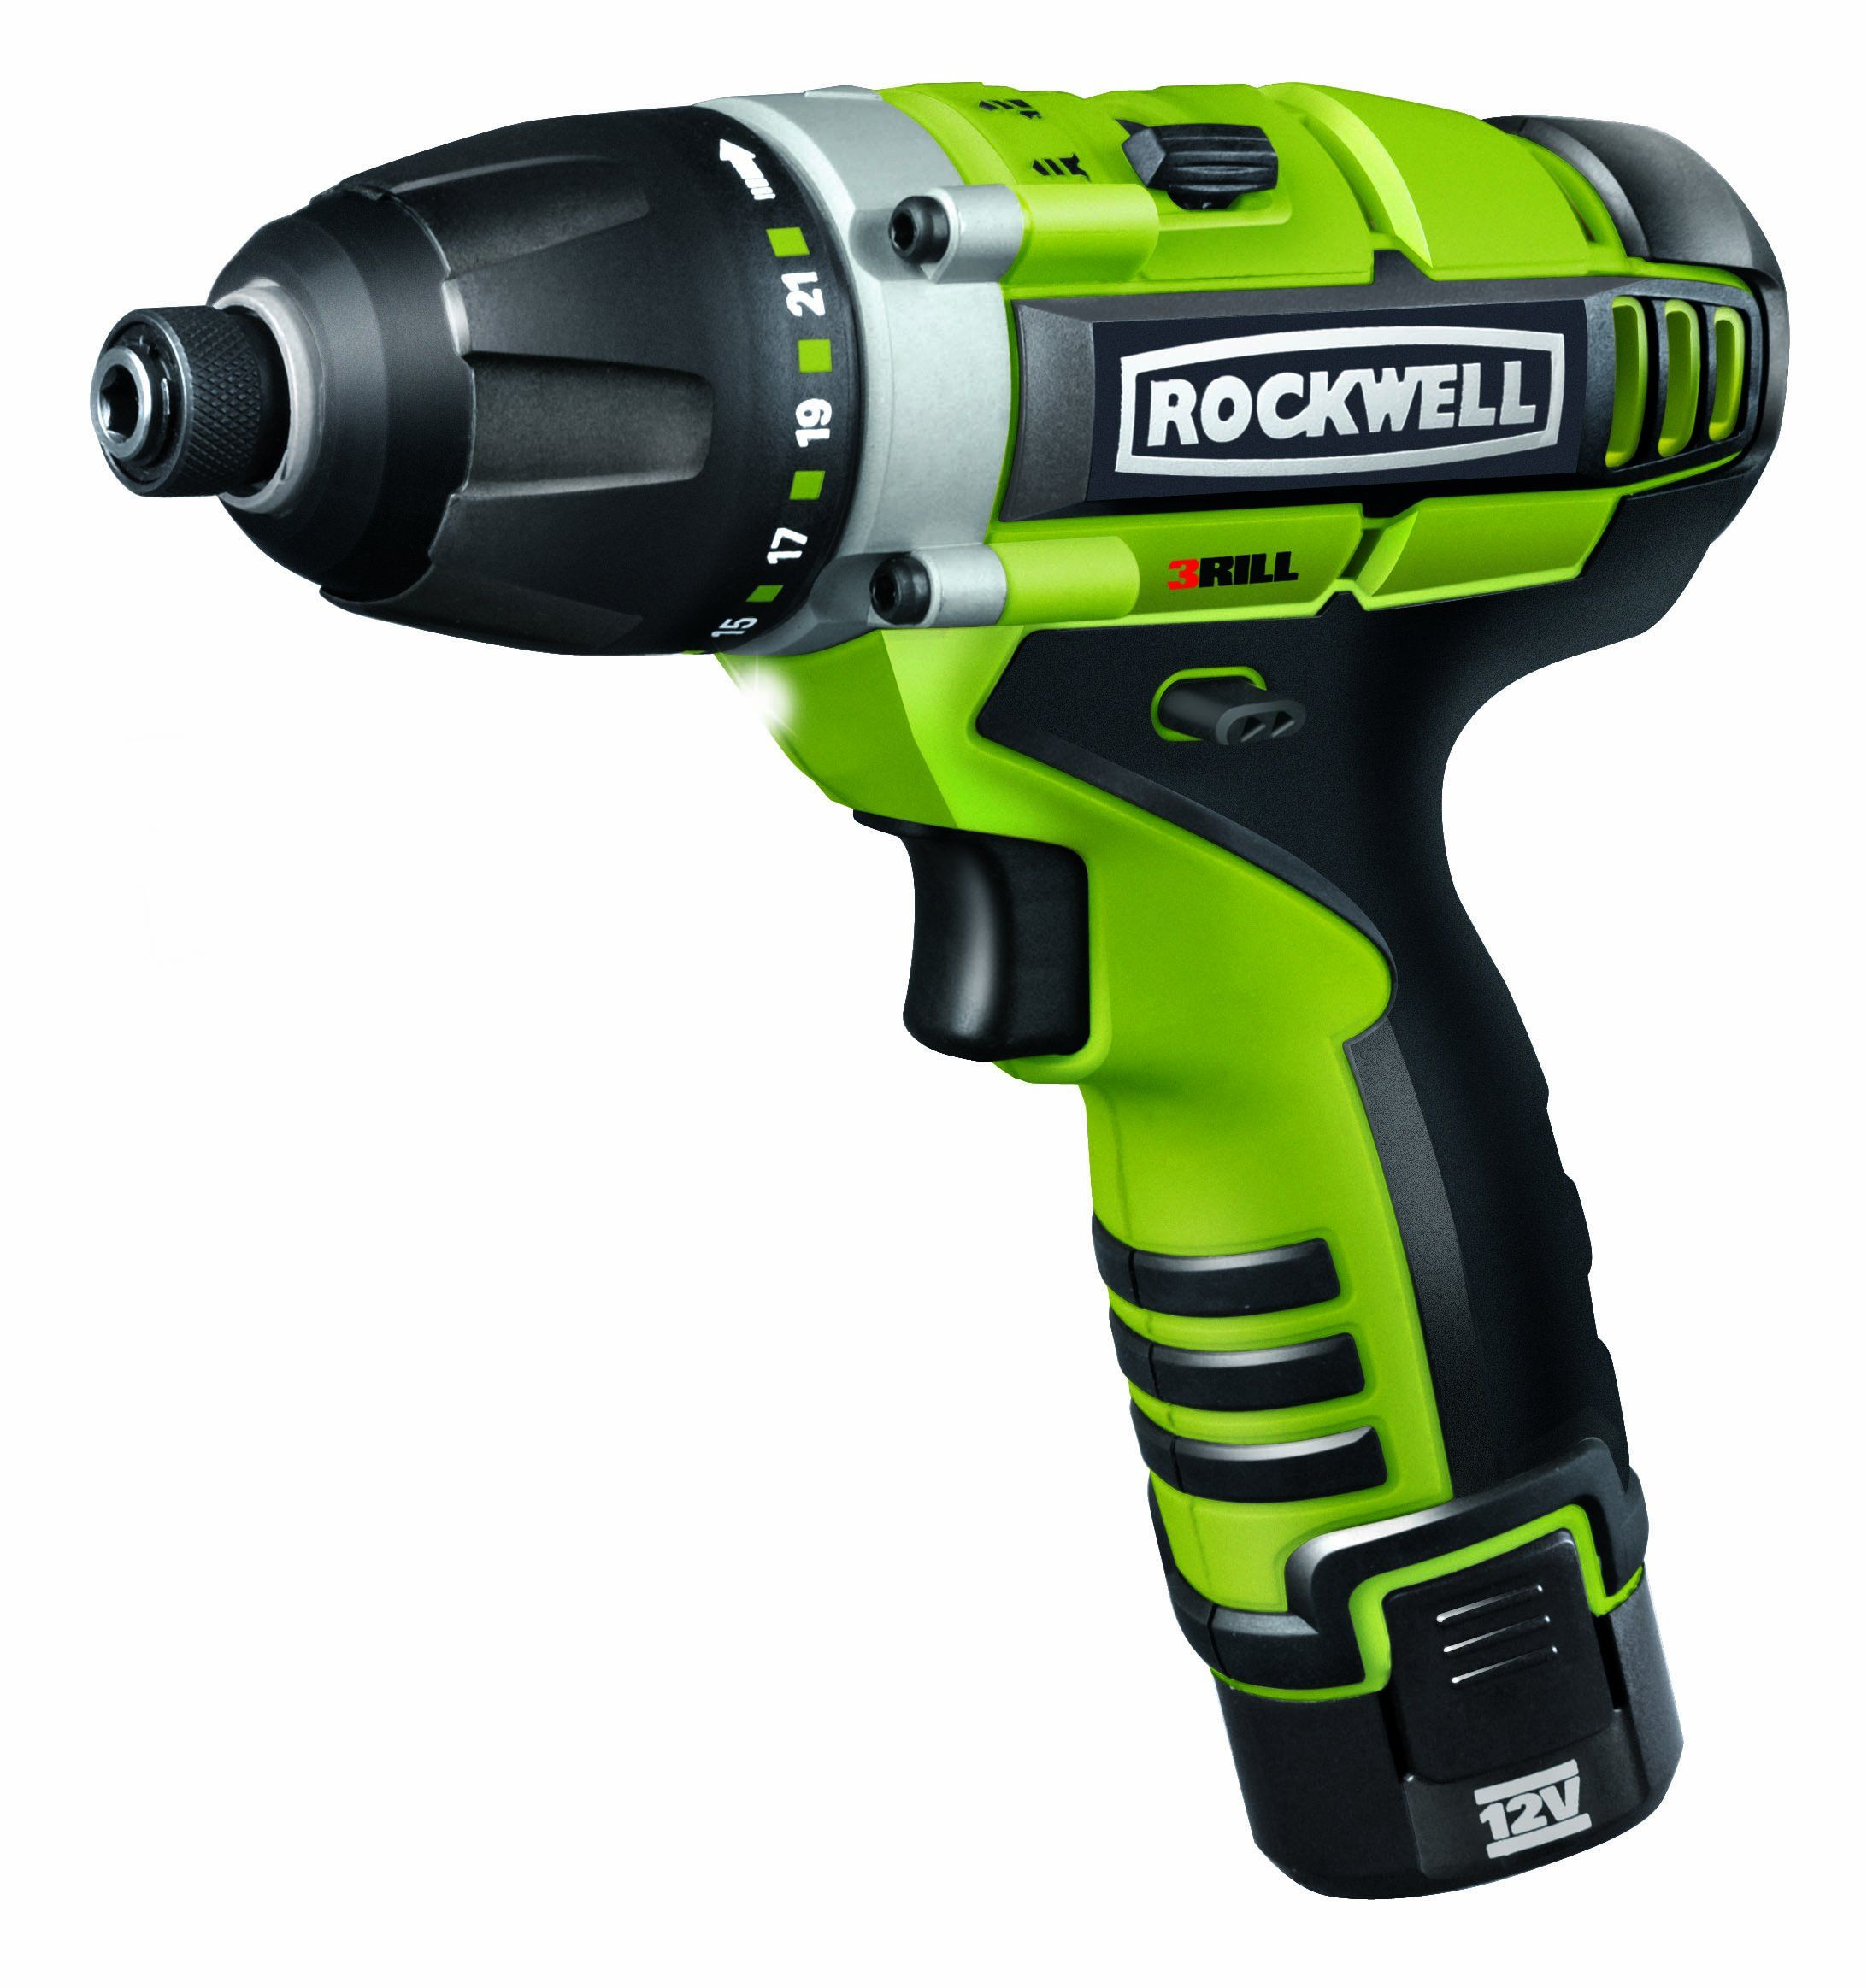 Rockwell Rk2515k2 Lithiumtech 3rill 12 Volt 3 In 1 Impact Driver Cordless Drill Reviews Cordless Power Tools Tools